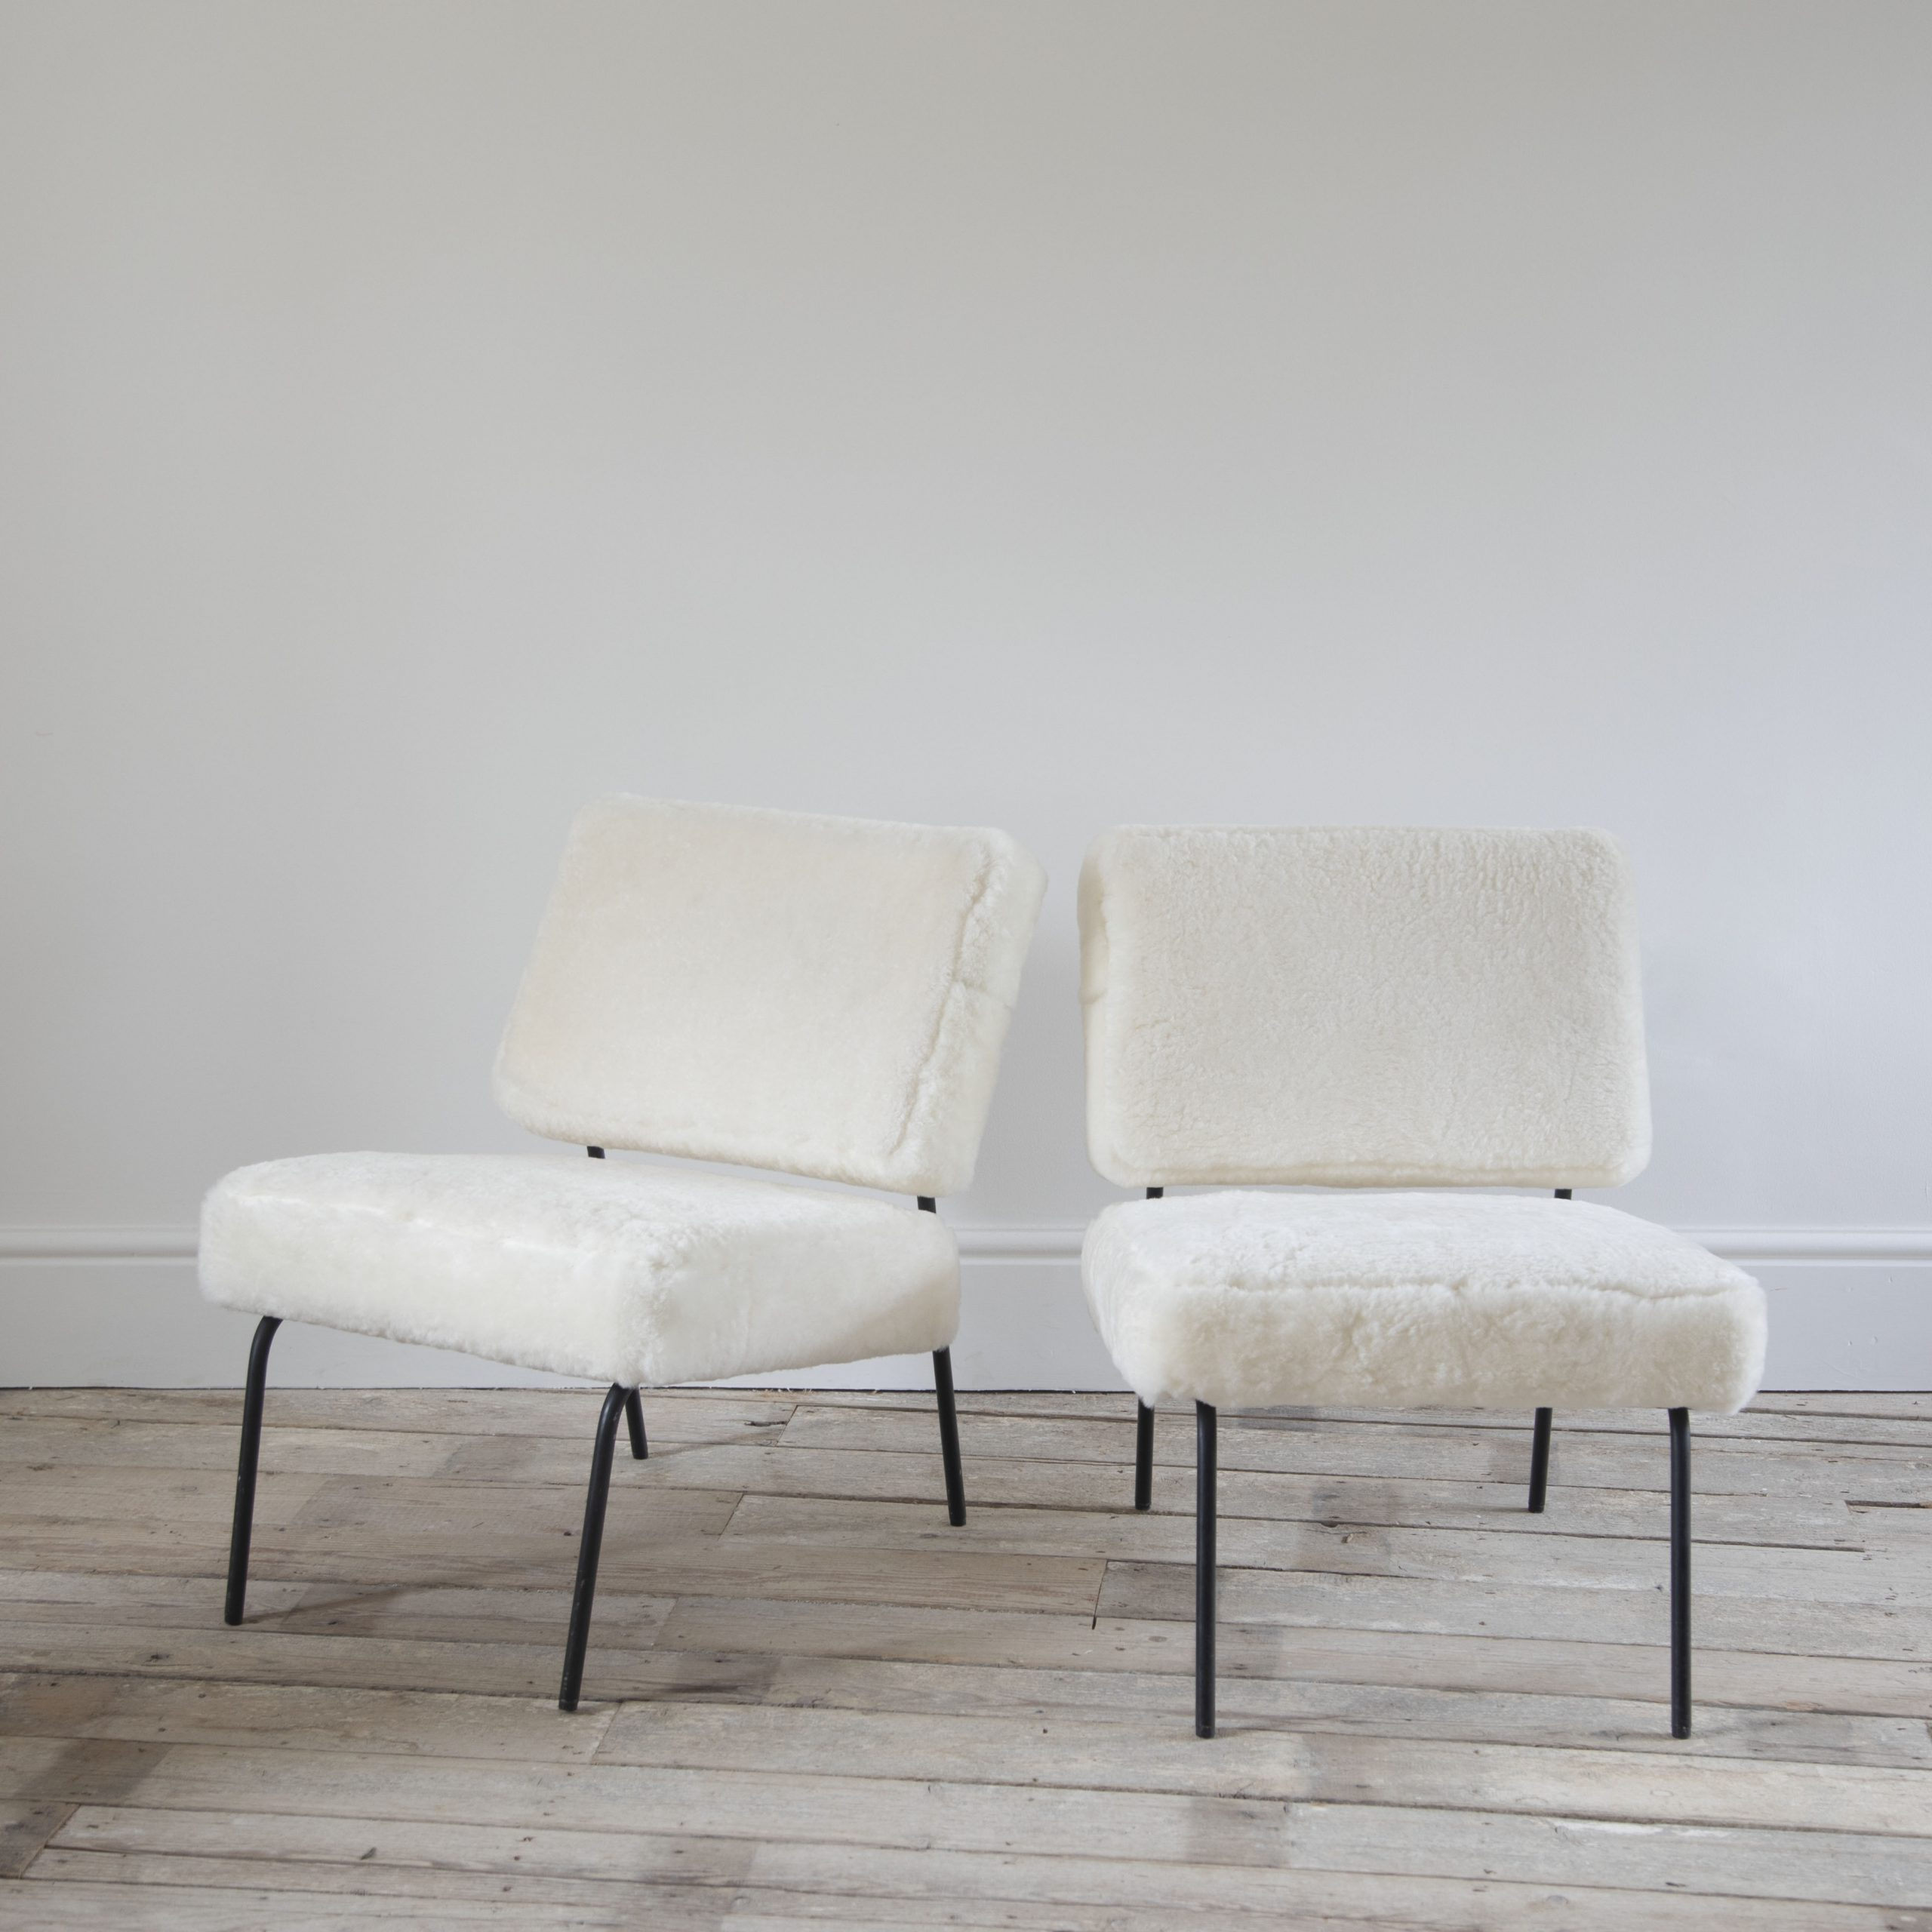 Pair of Pierre Guariche Airborne Edition Chairs